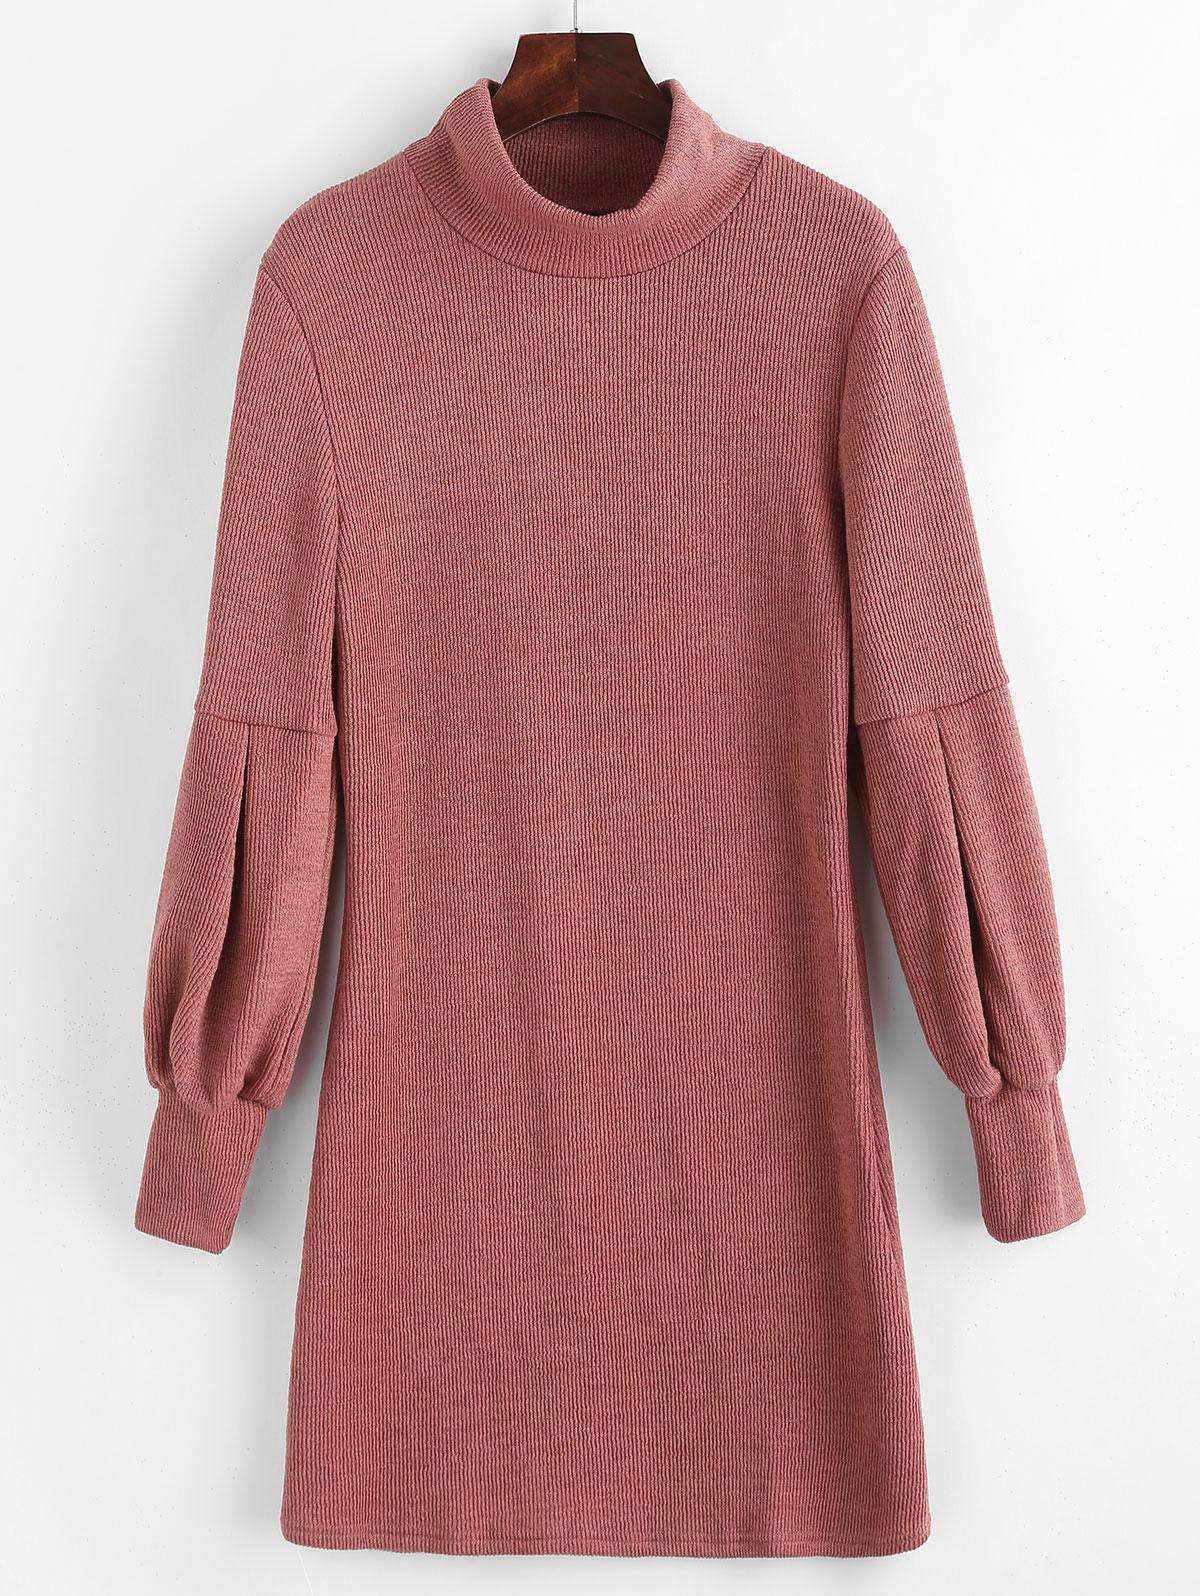 Lantern Sleeve High Neck Sweater Fitted Dress